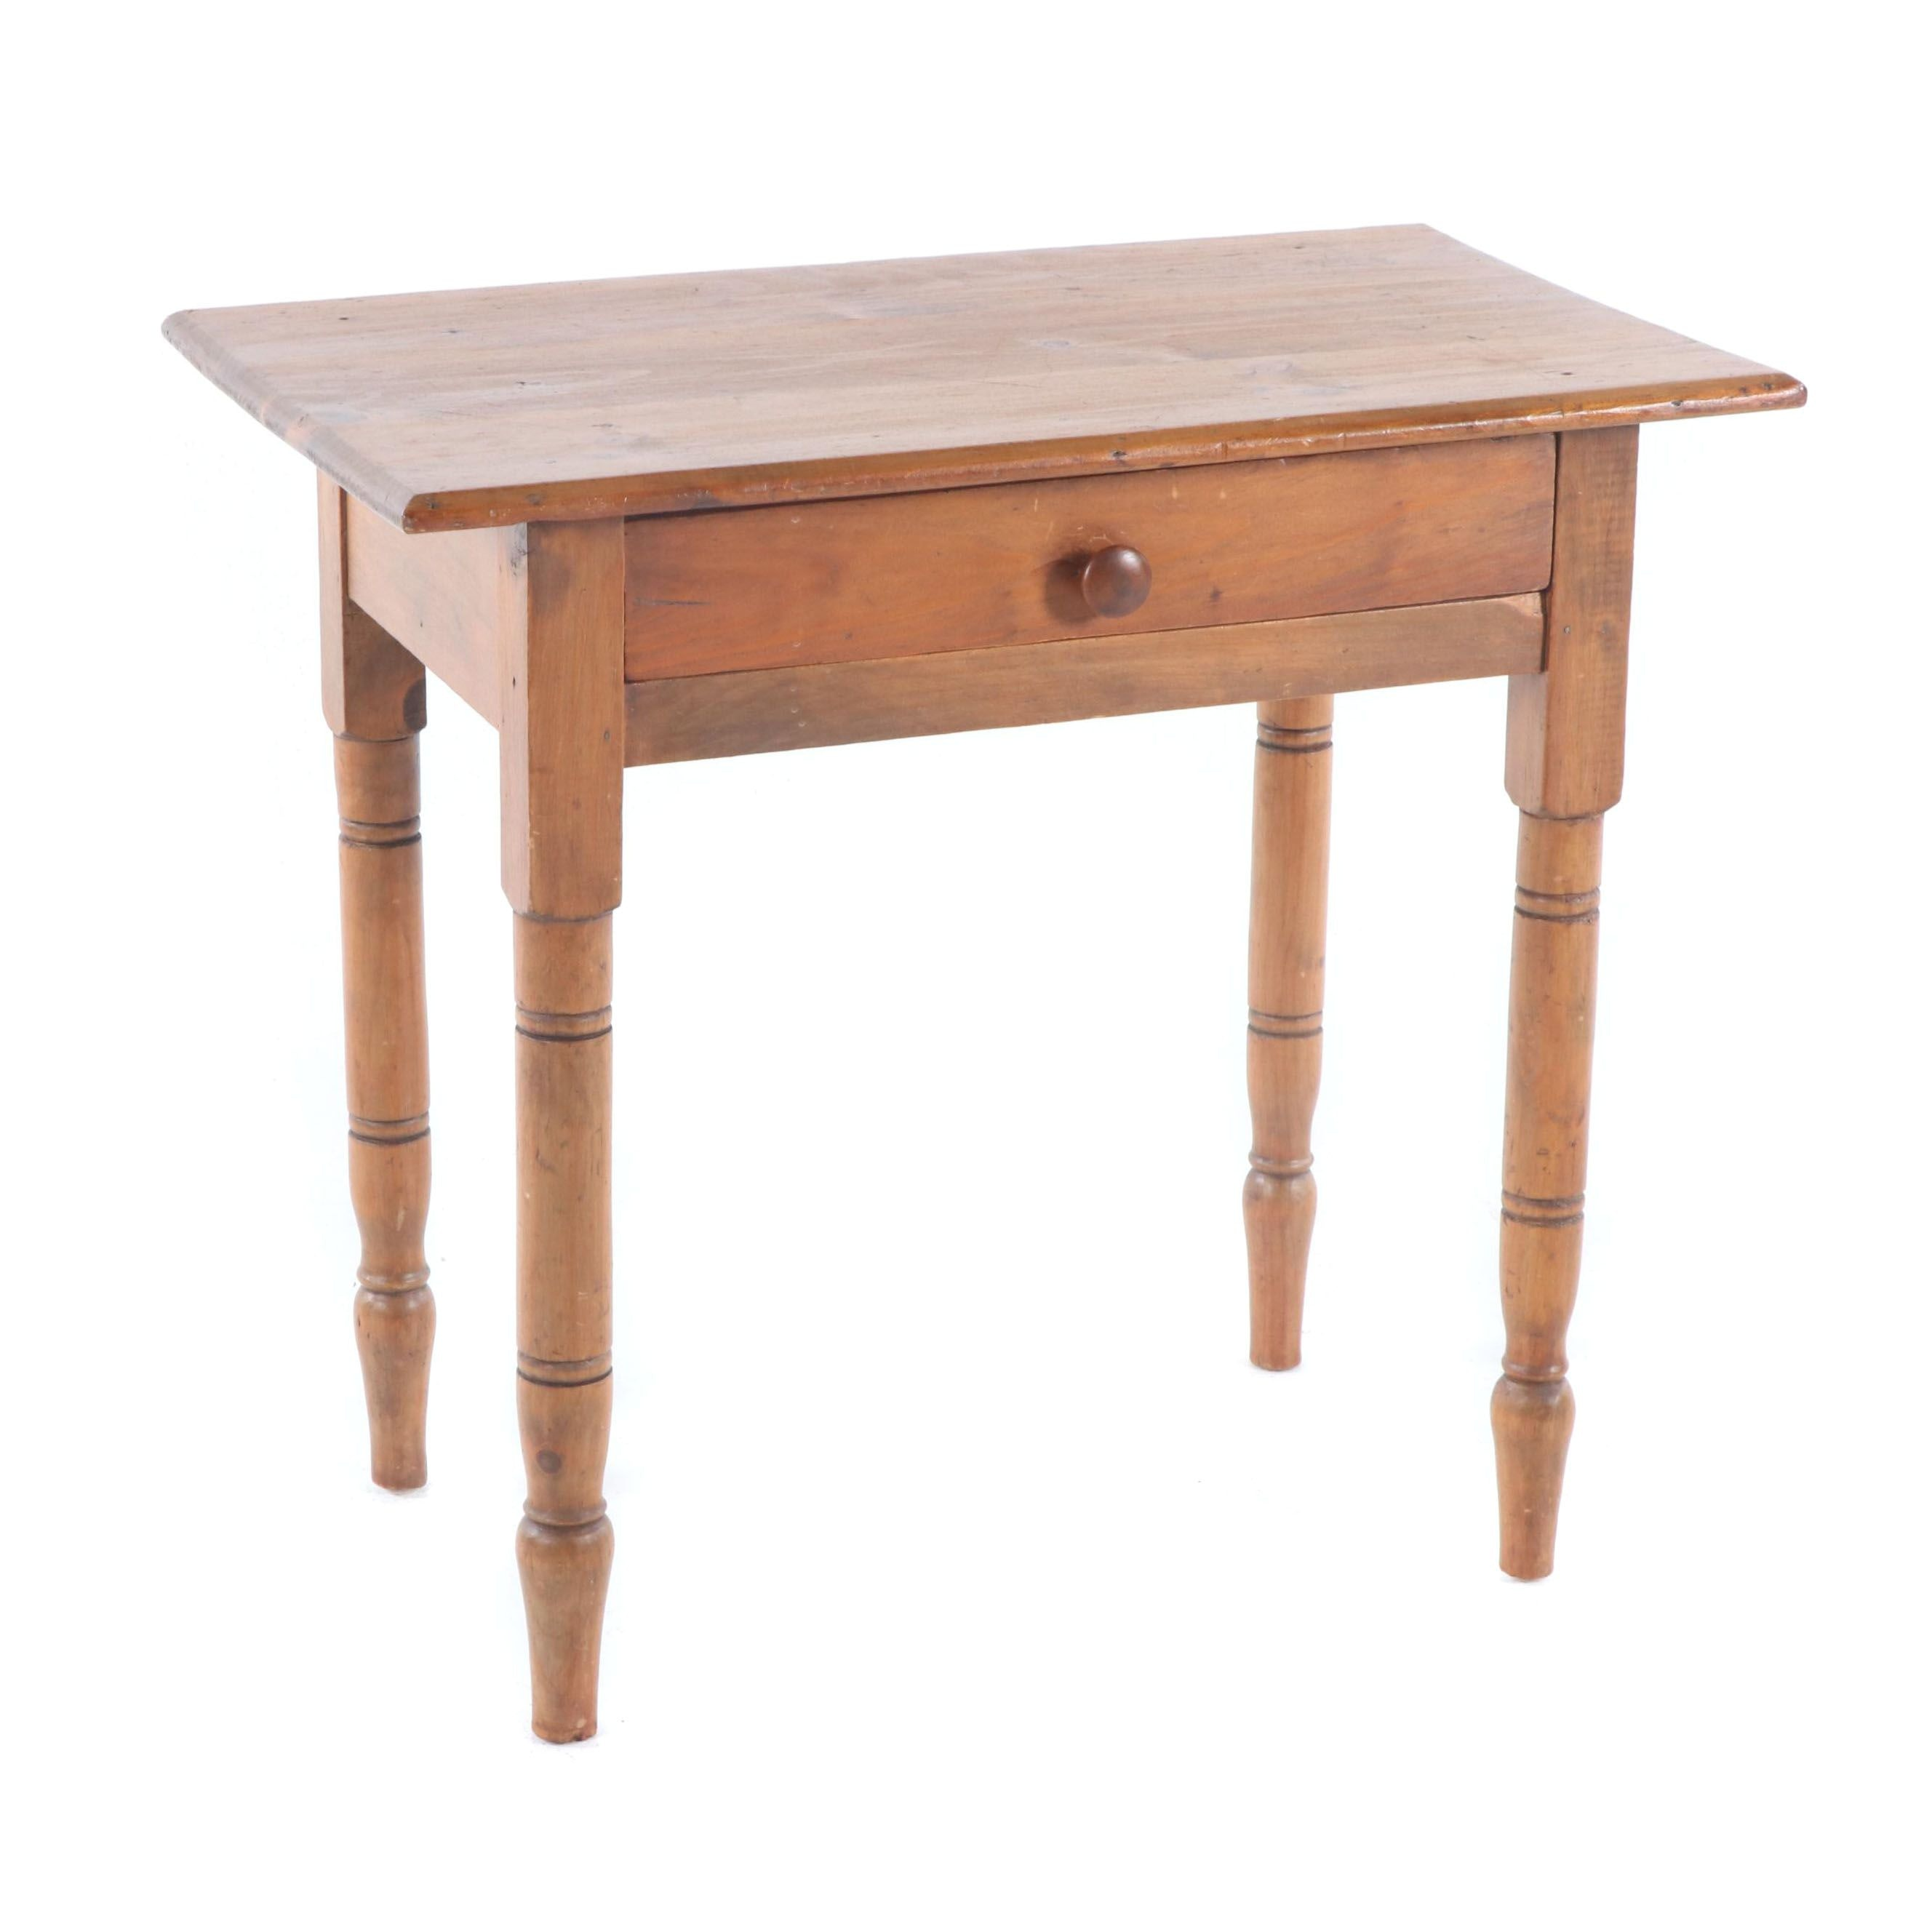 Federal Style Pine Side Table with Drawer, Late 19th Century